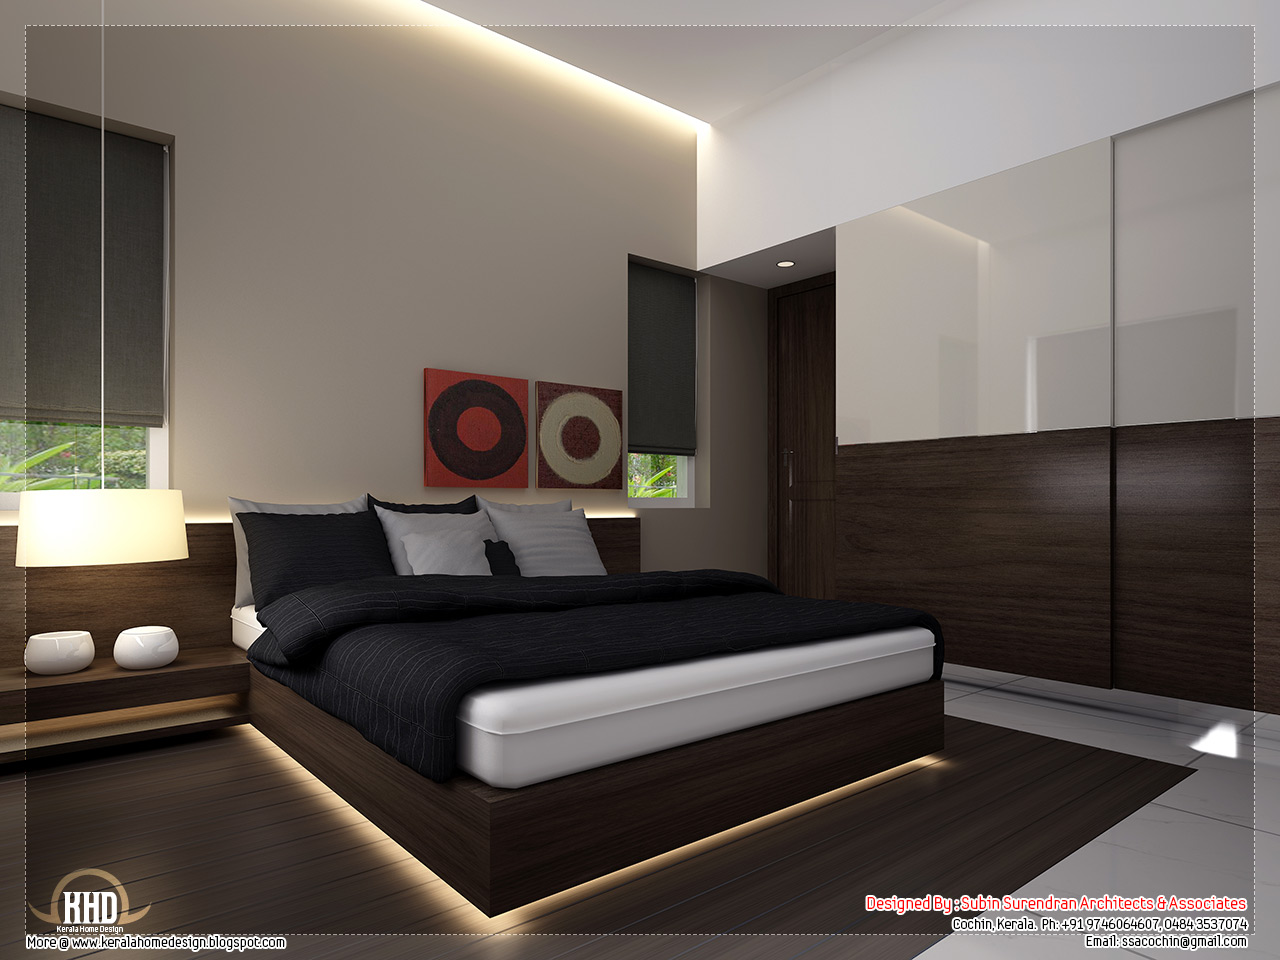 Beautiful home interior designs kerala home design and floor plans Internal house design